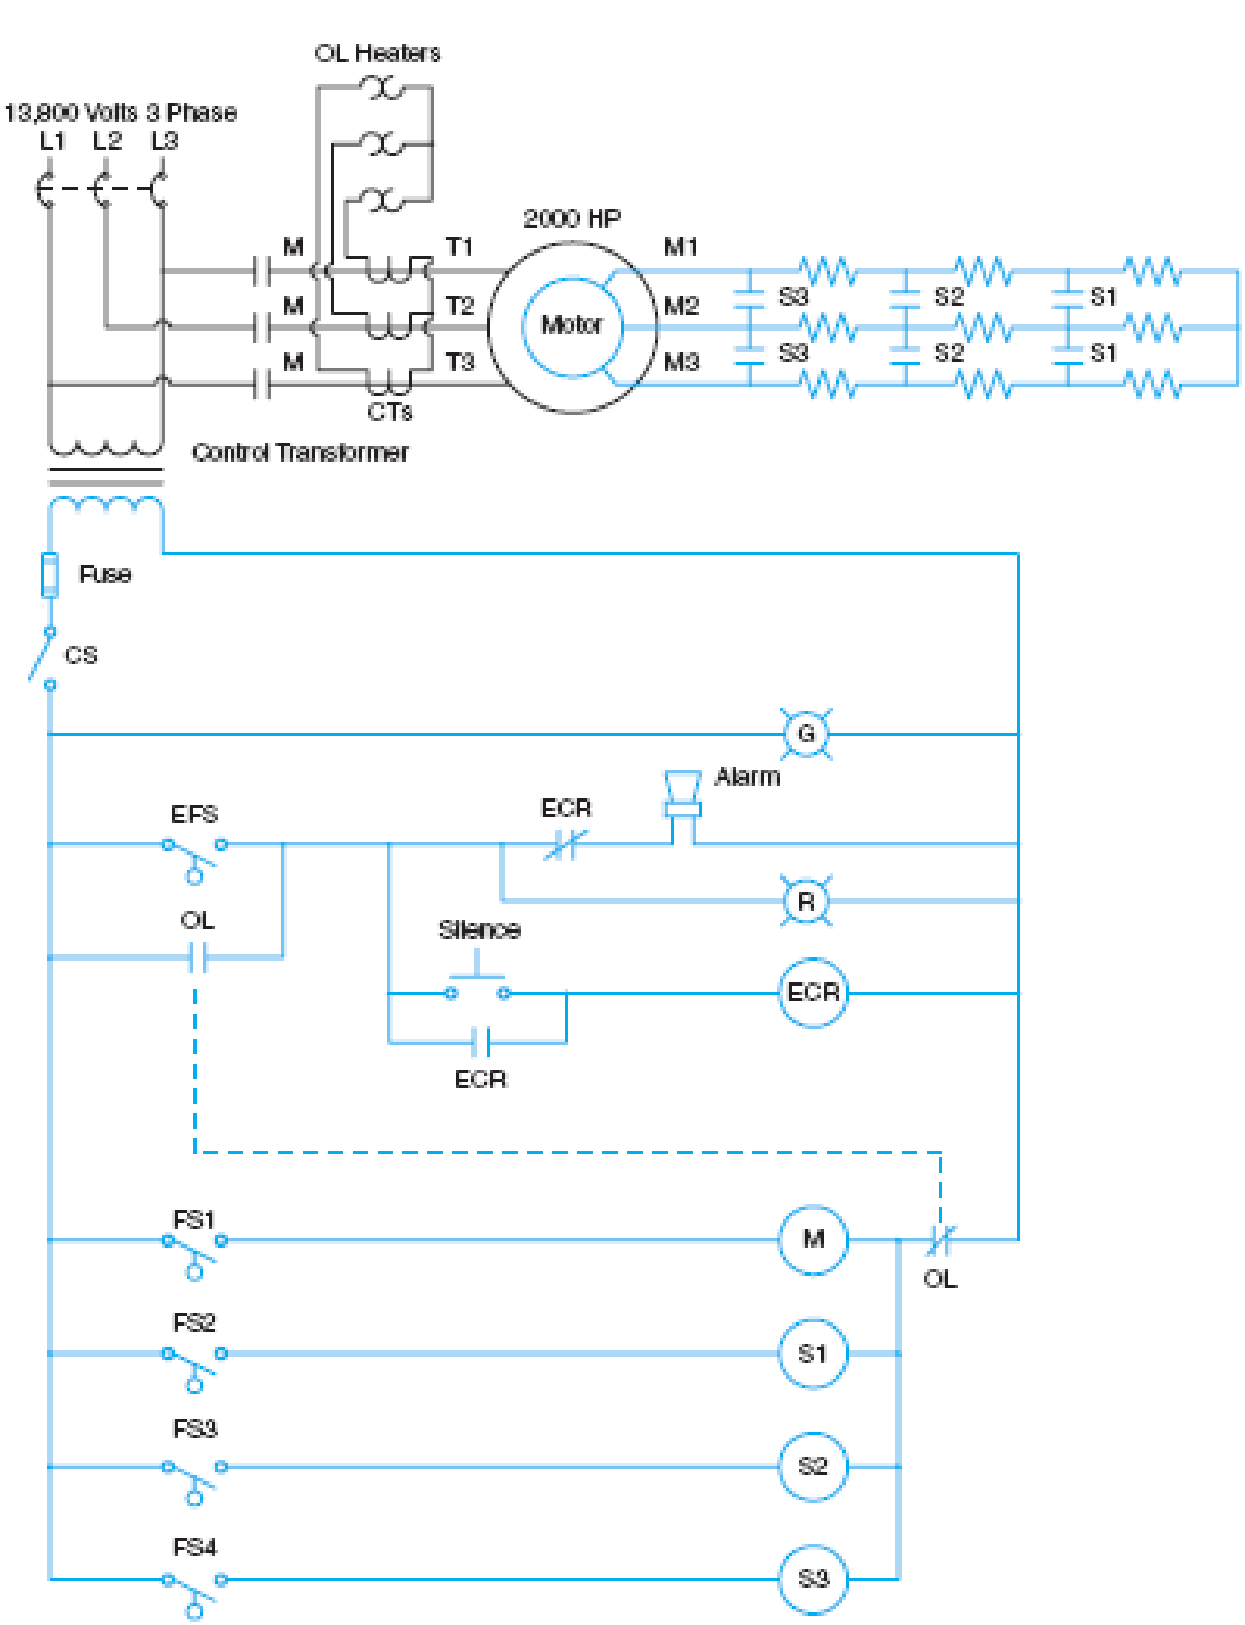 Chapter 37, Problem 4SQ, Refer to the circuit shown in Figure 371. A worker reports that the sump tank is overflowing, the